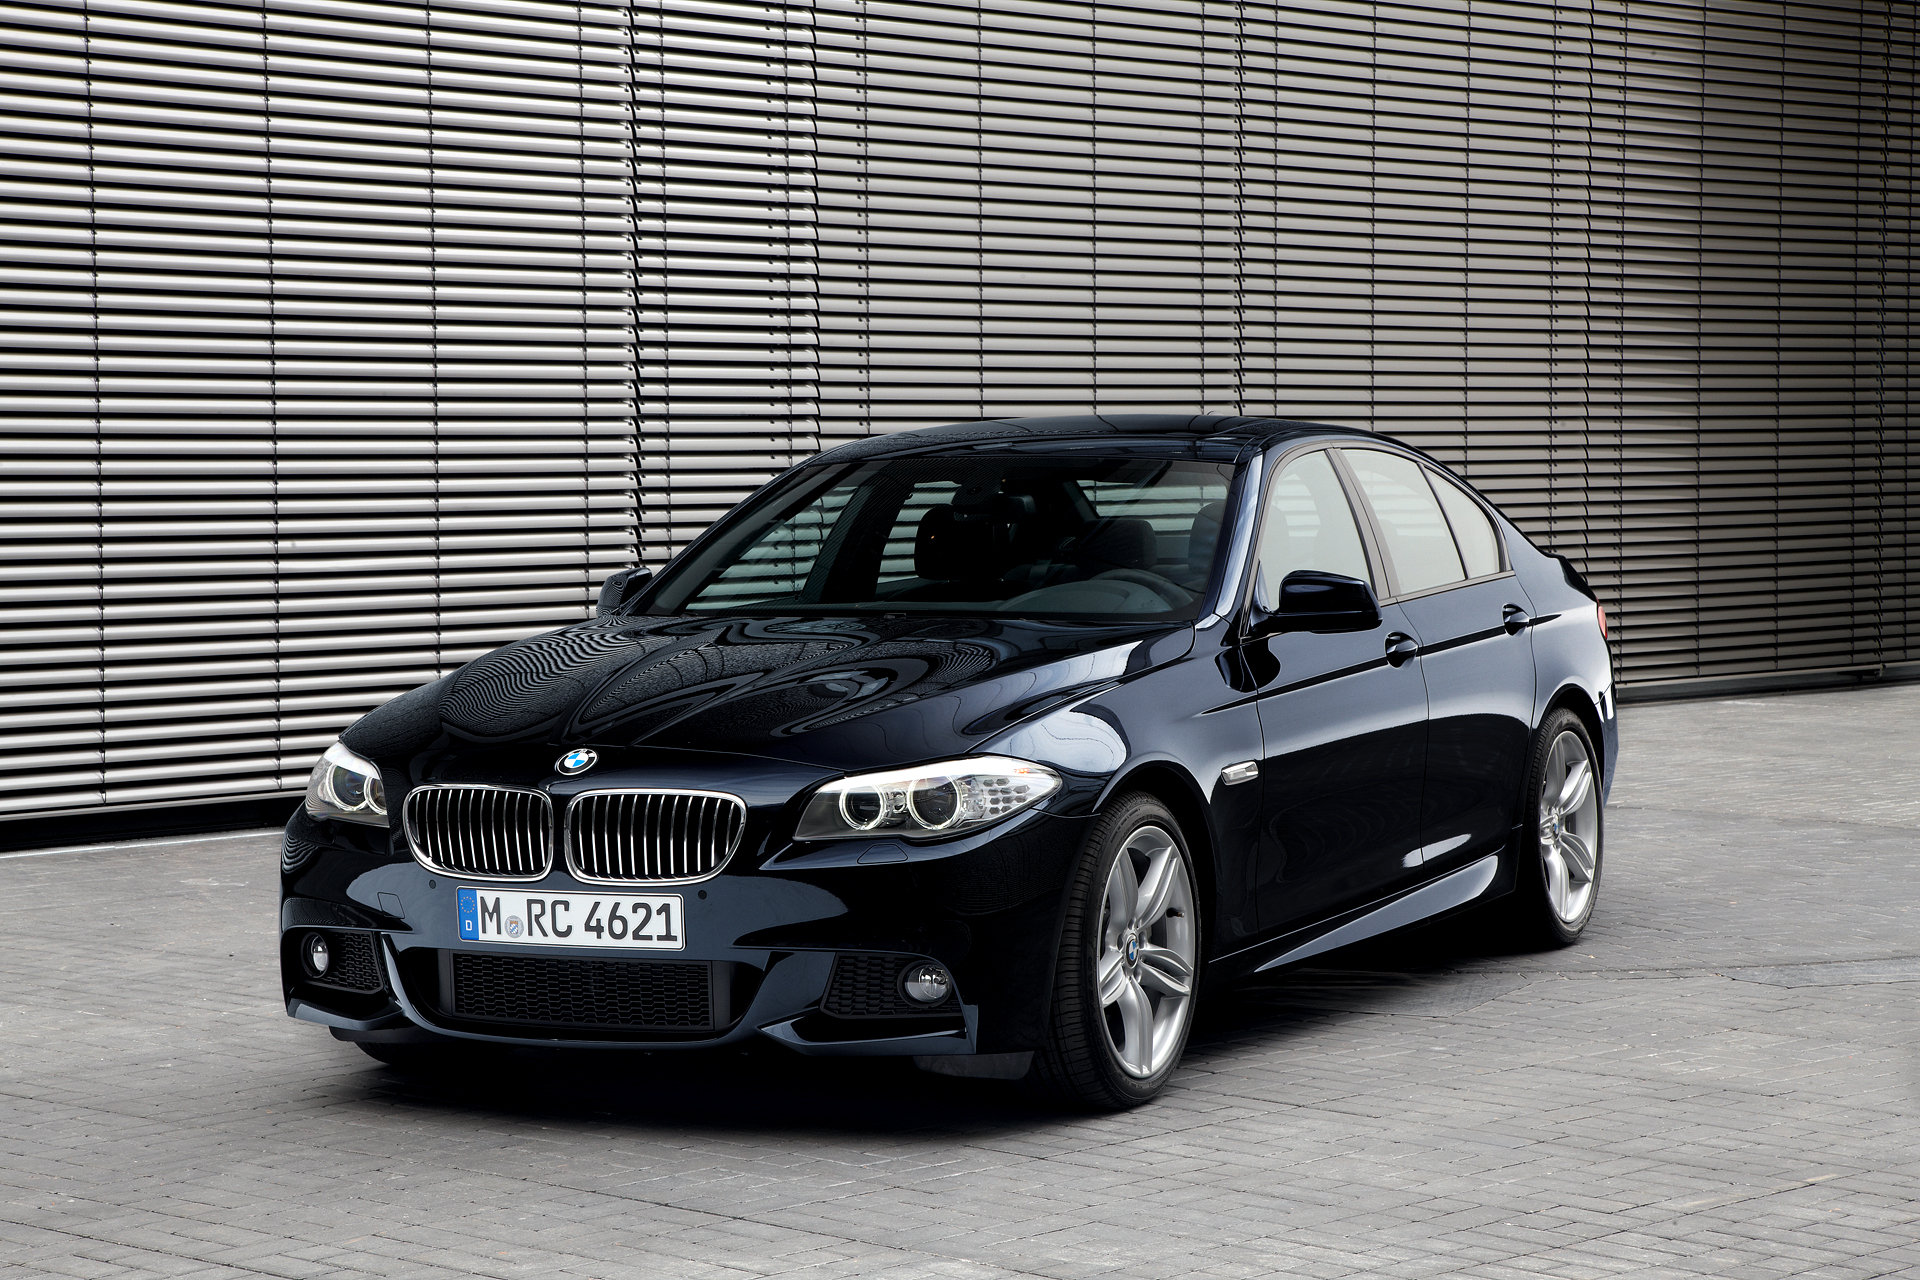 M Sport 2010 Bmw 5 Series Revealed Scoobynet Com